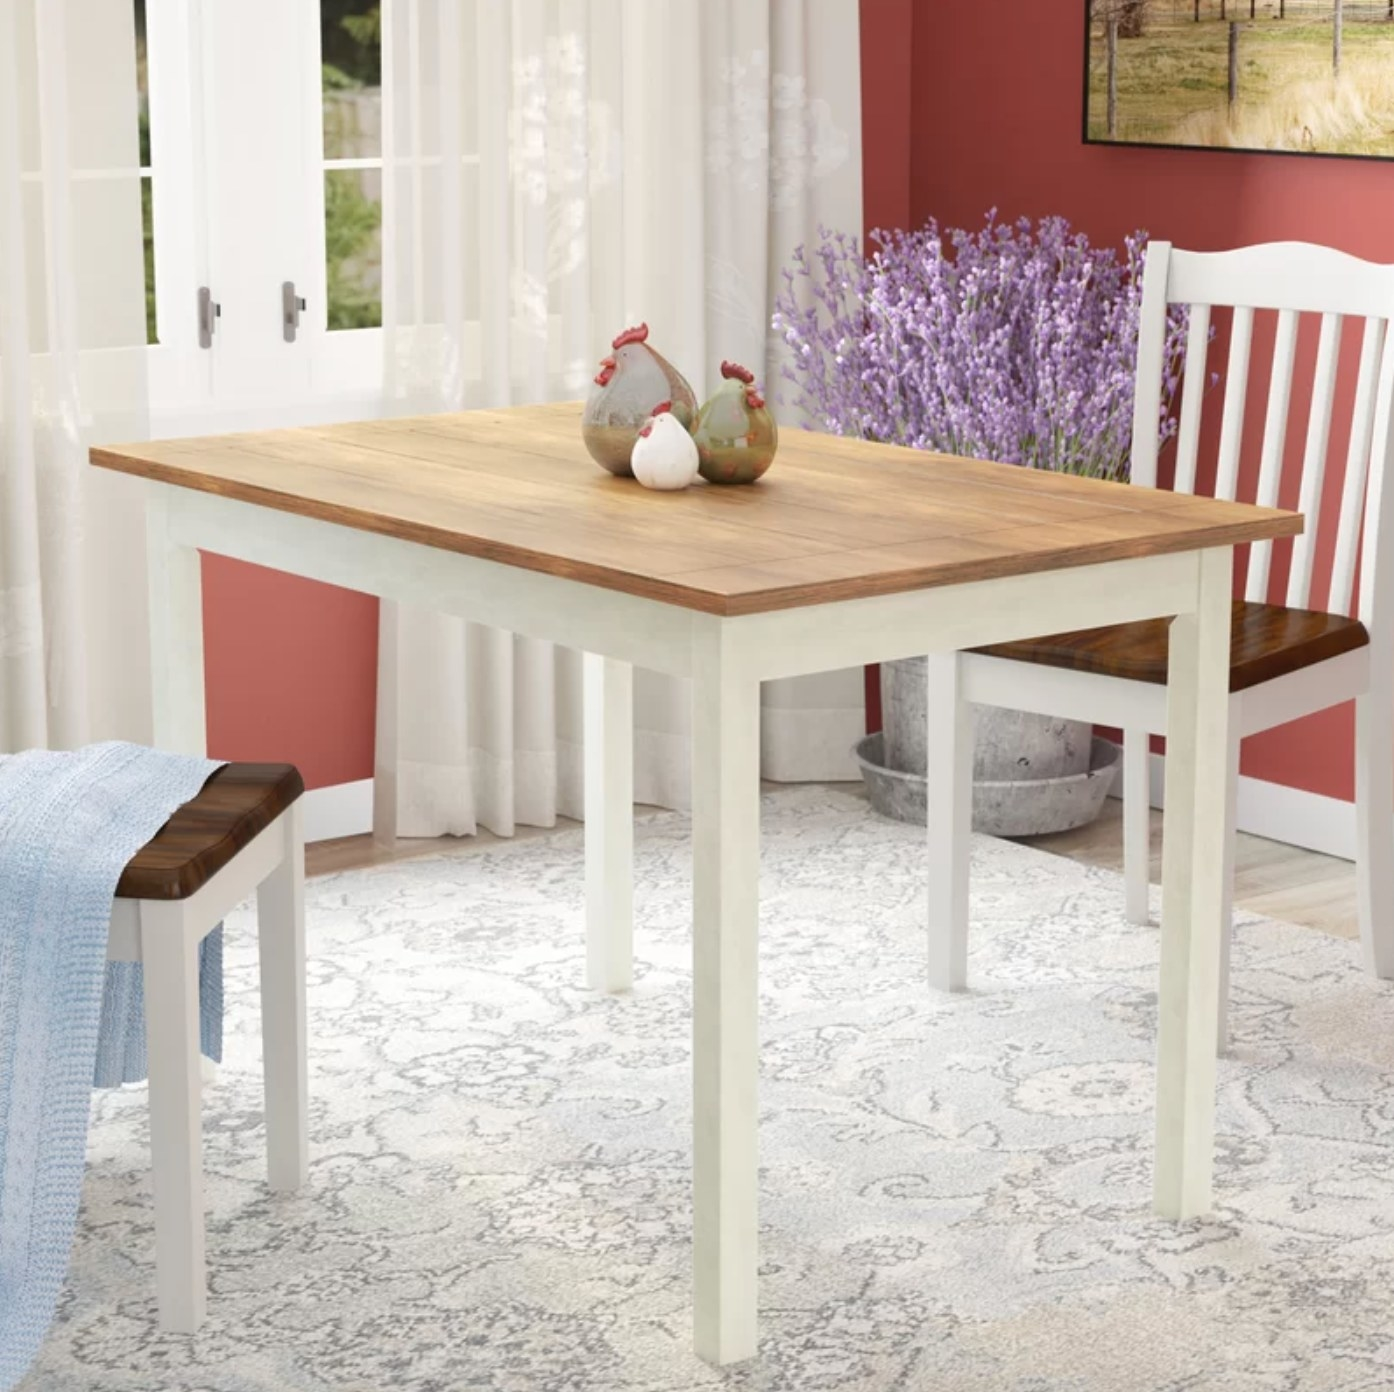 The wood dining table with white legs